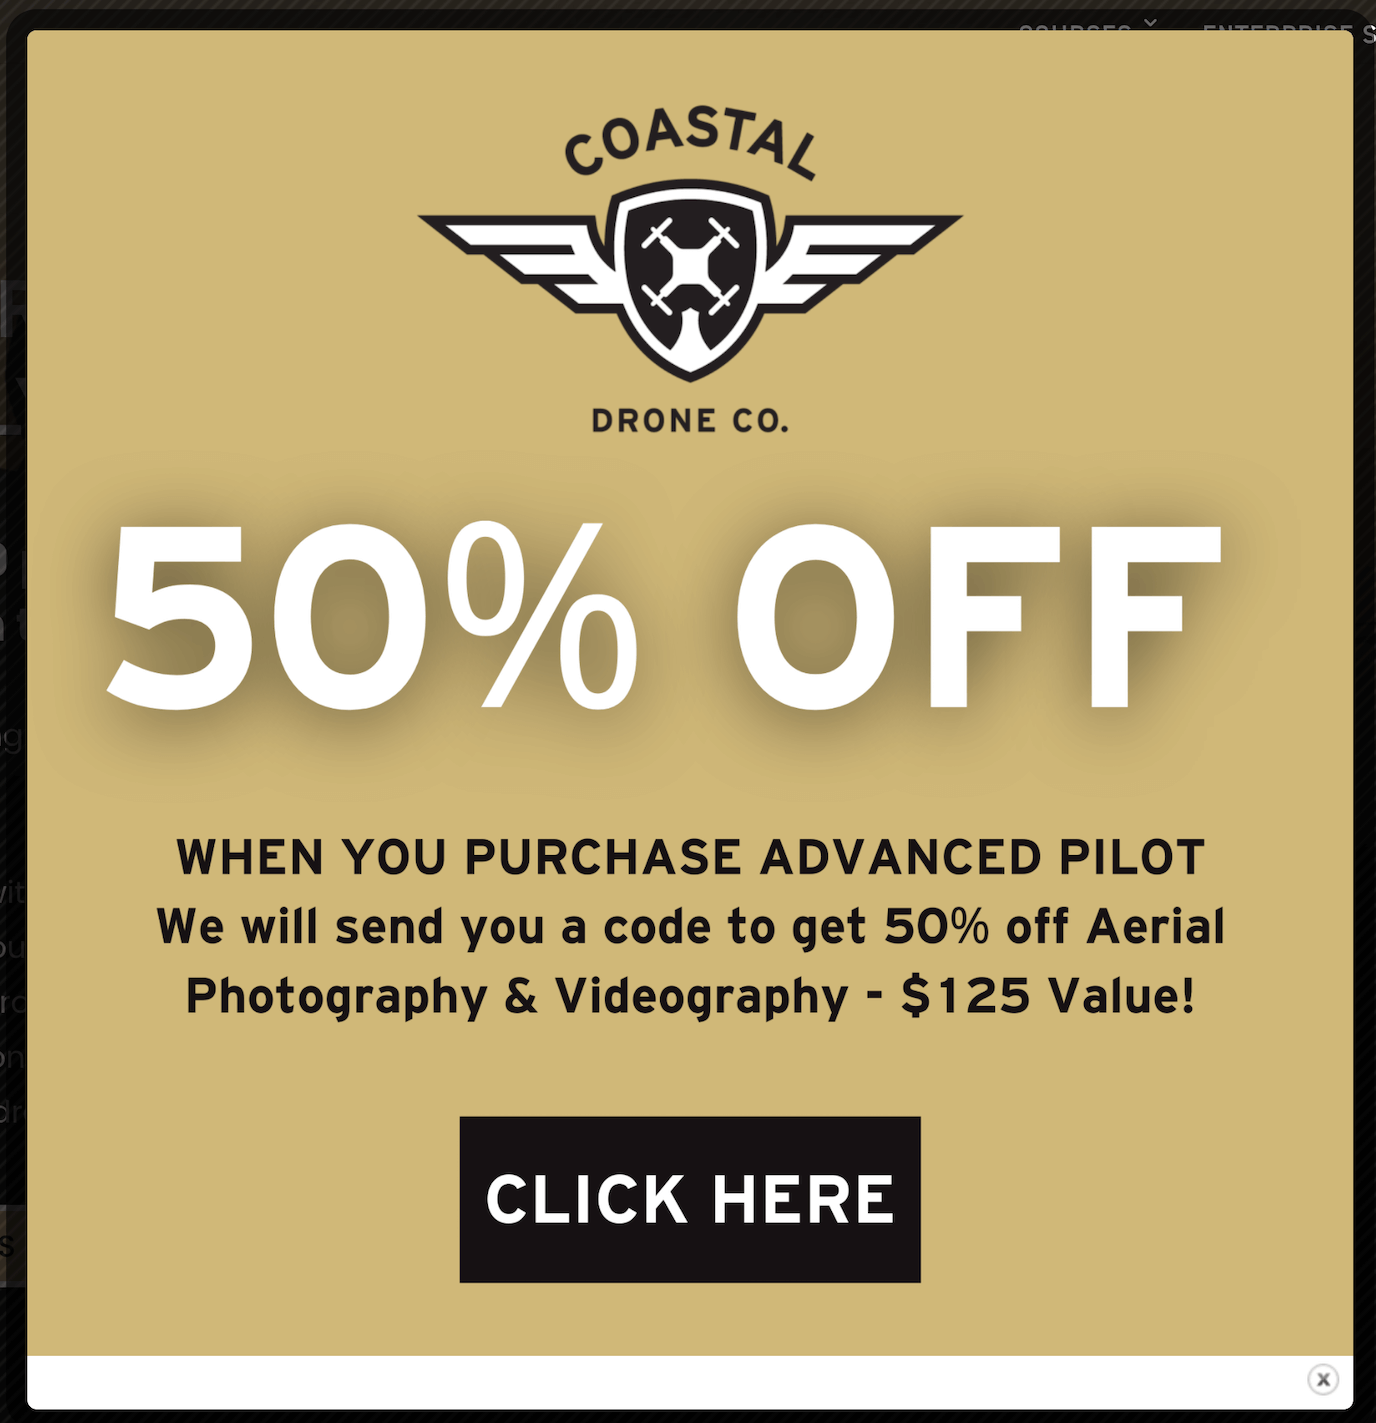 Coastal Drone discount pricing